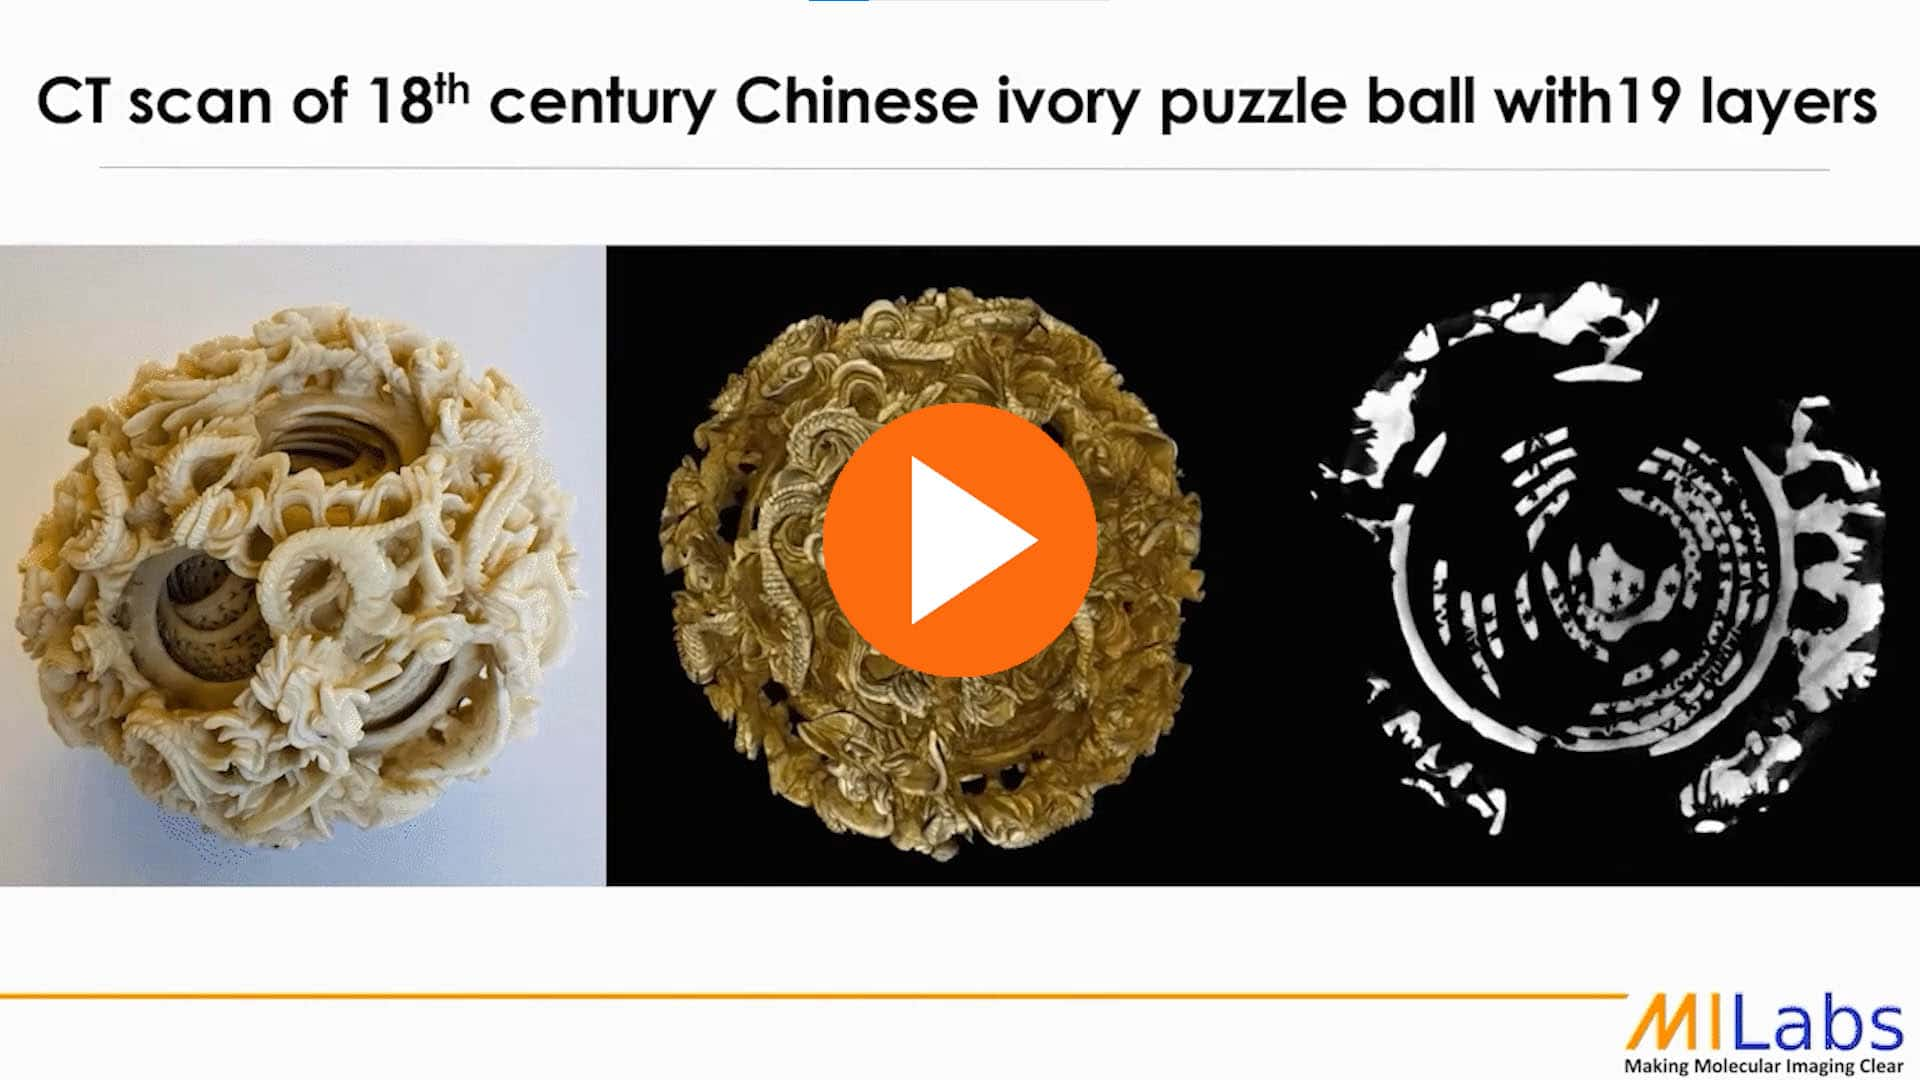 archeological non desctuctive testing of chinese ivory ball with 19 layers with microCT